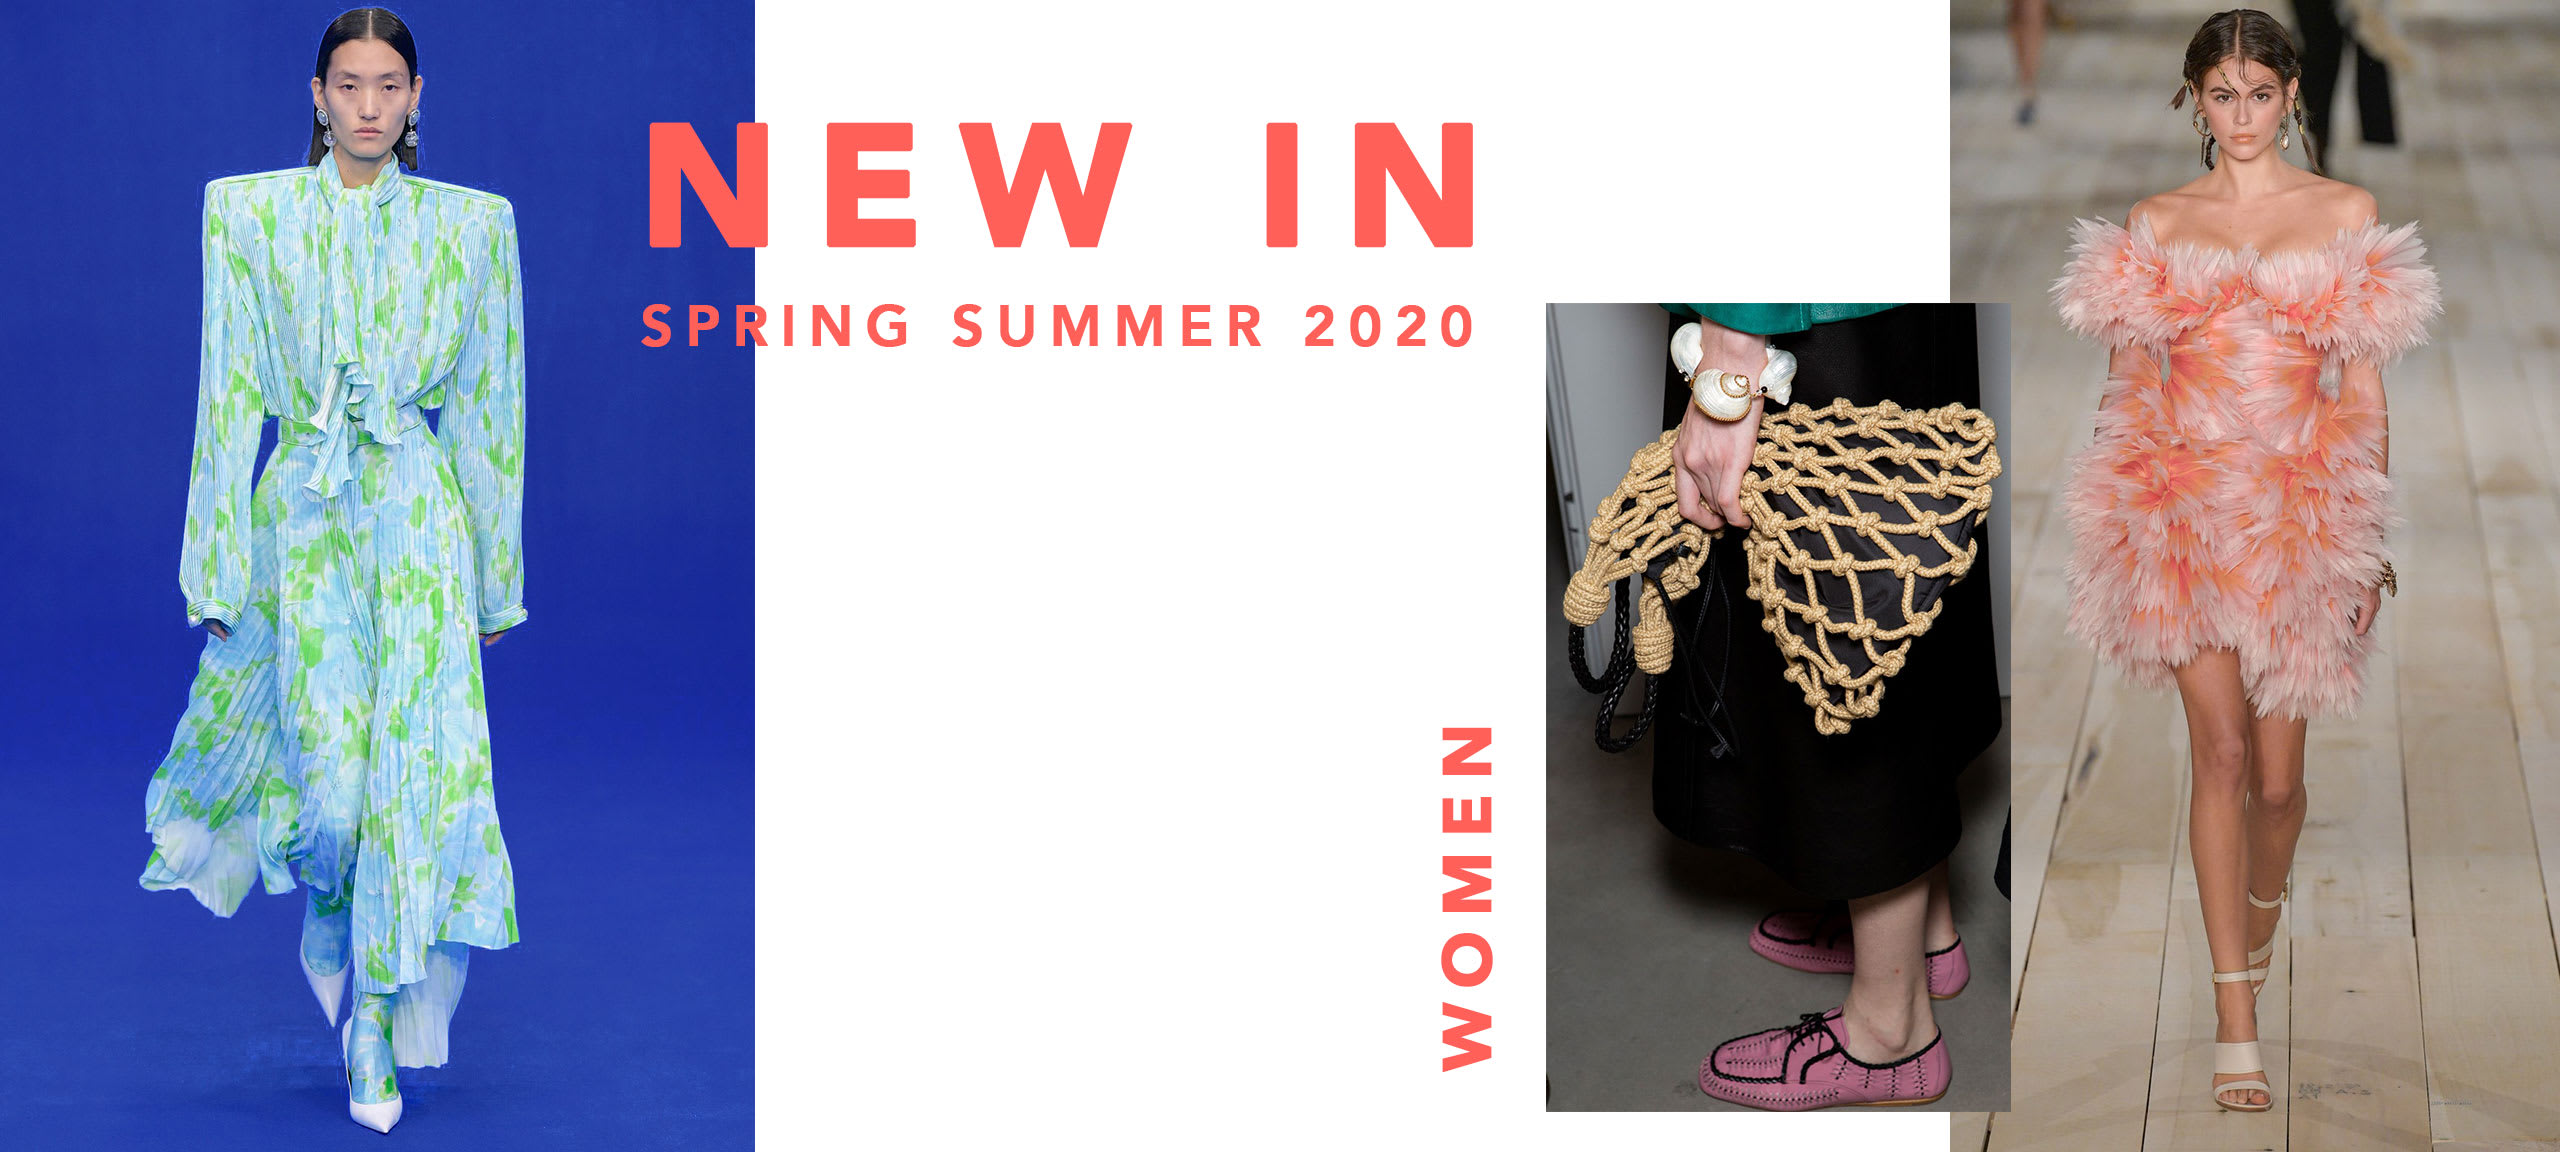 Women New In Spring Summer 2020 by italist